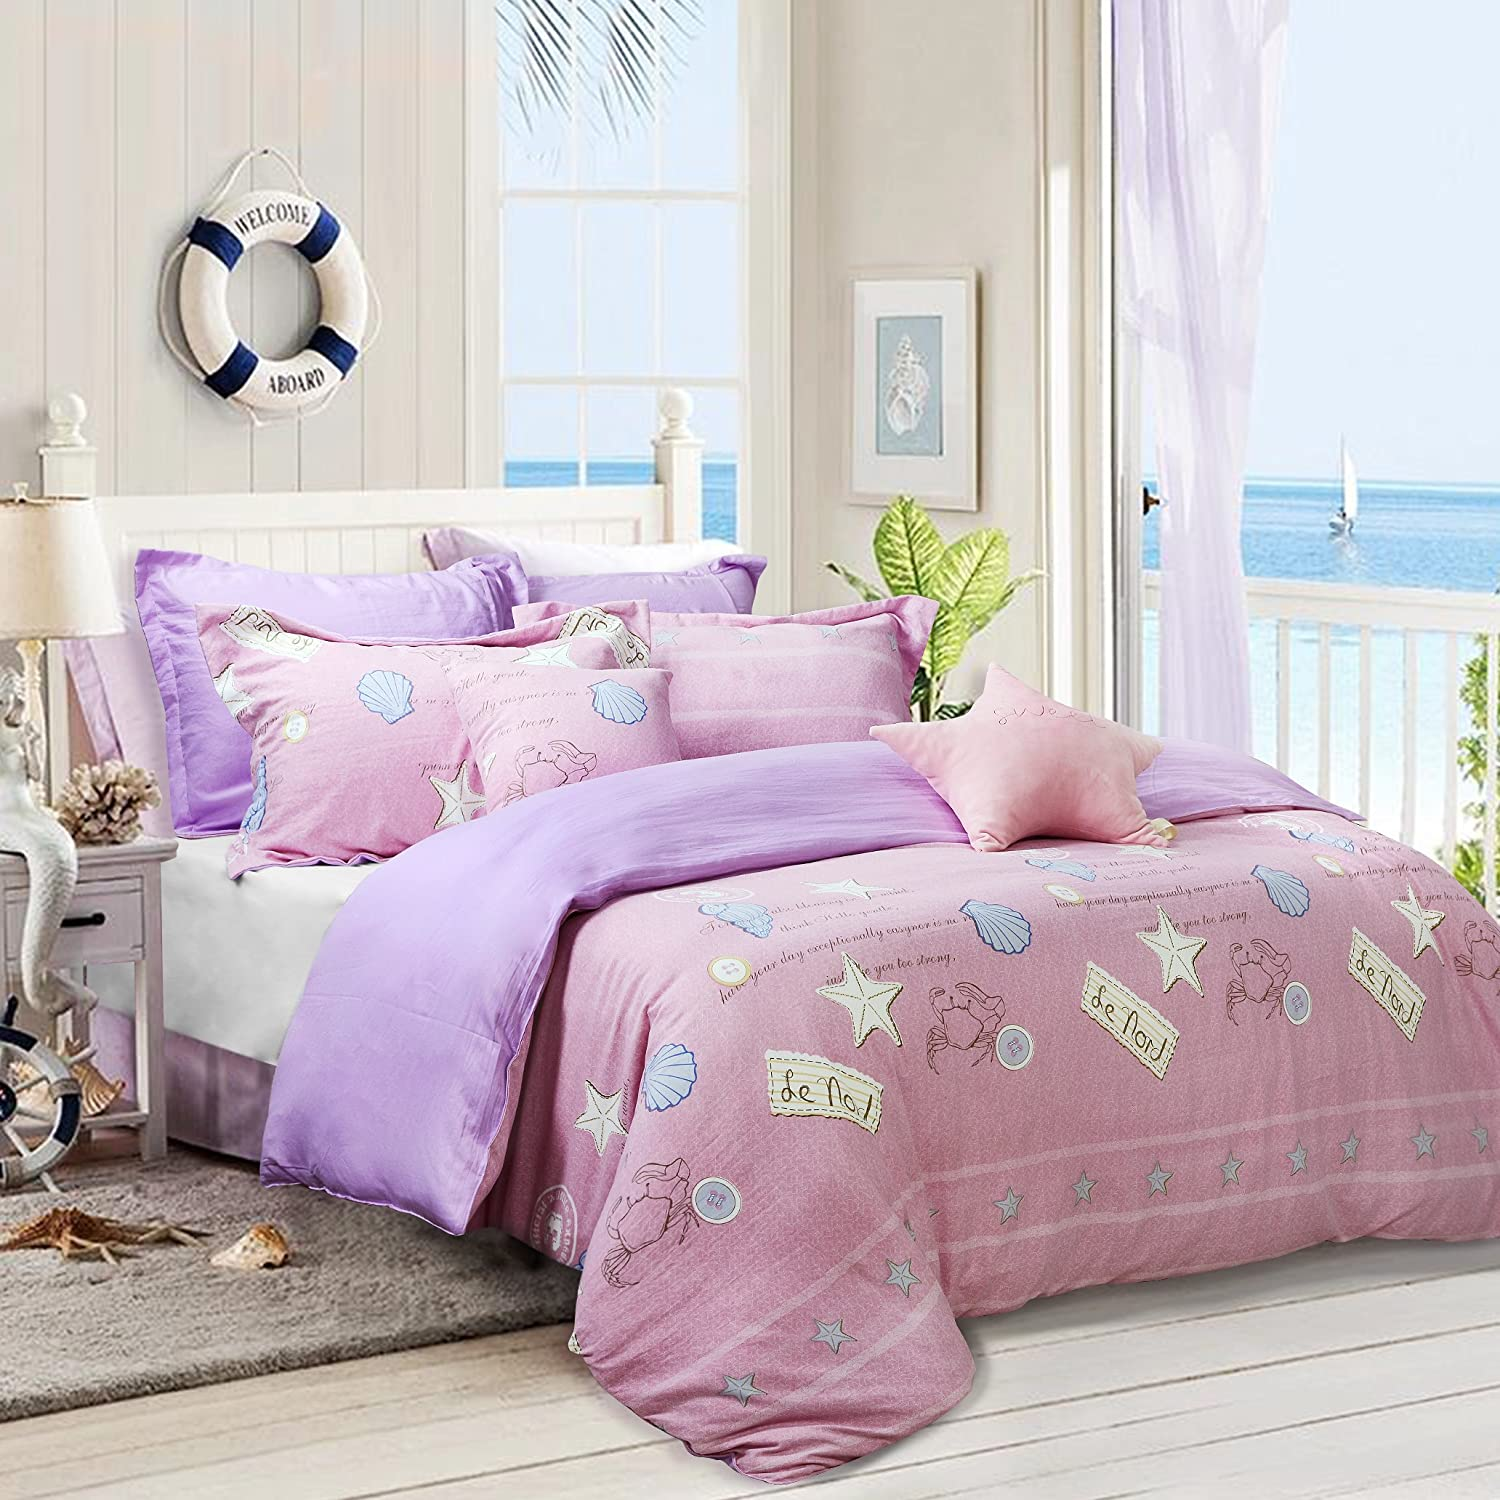 . TEALP Coastal Living Bedding Dover Cover Reversible Starfish Print Bedding  Sets Soft Breathable Material for Grils